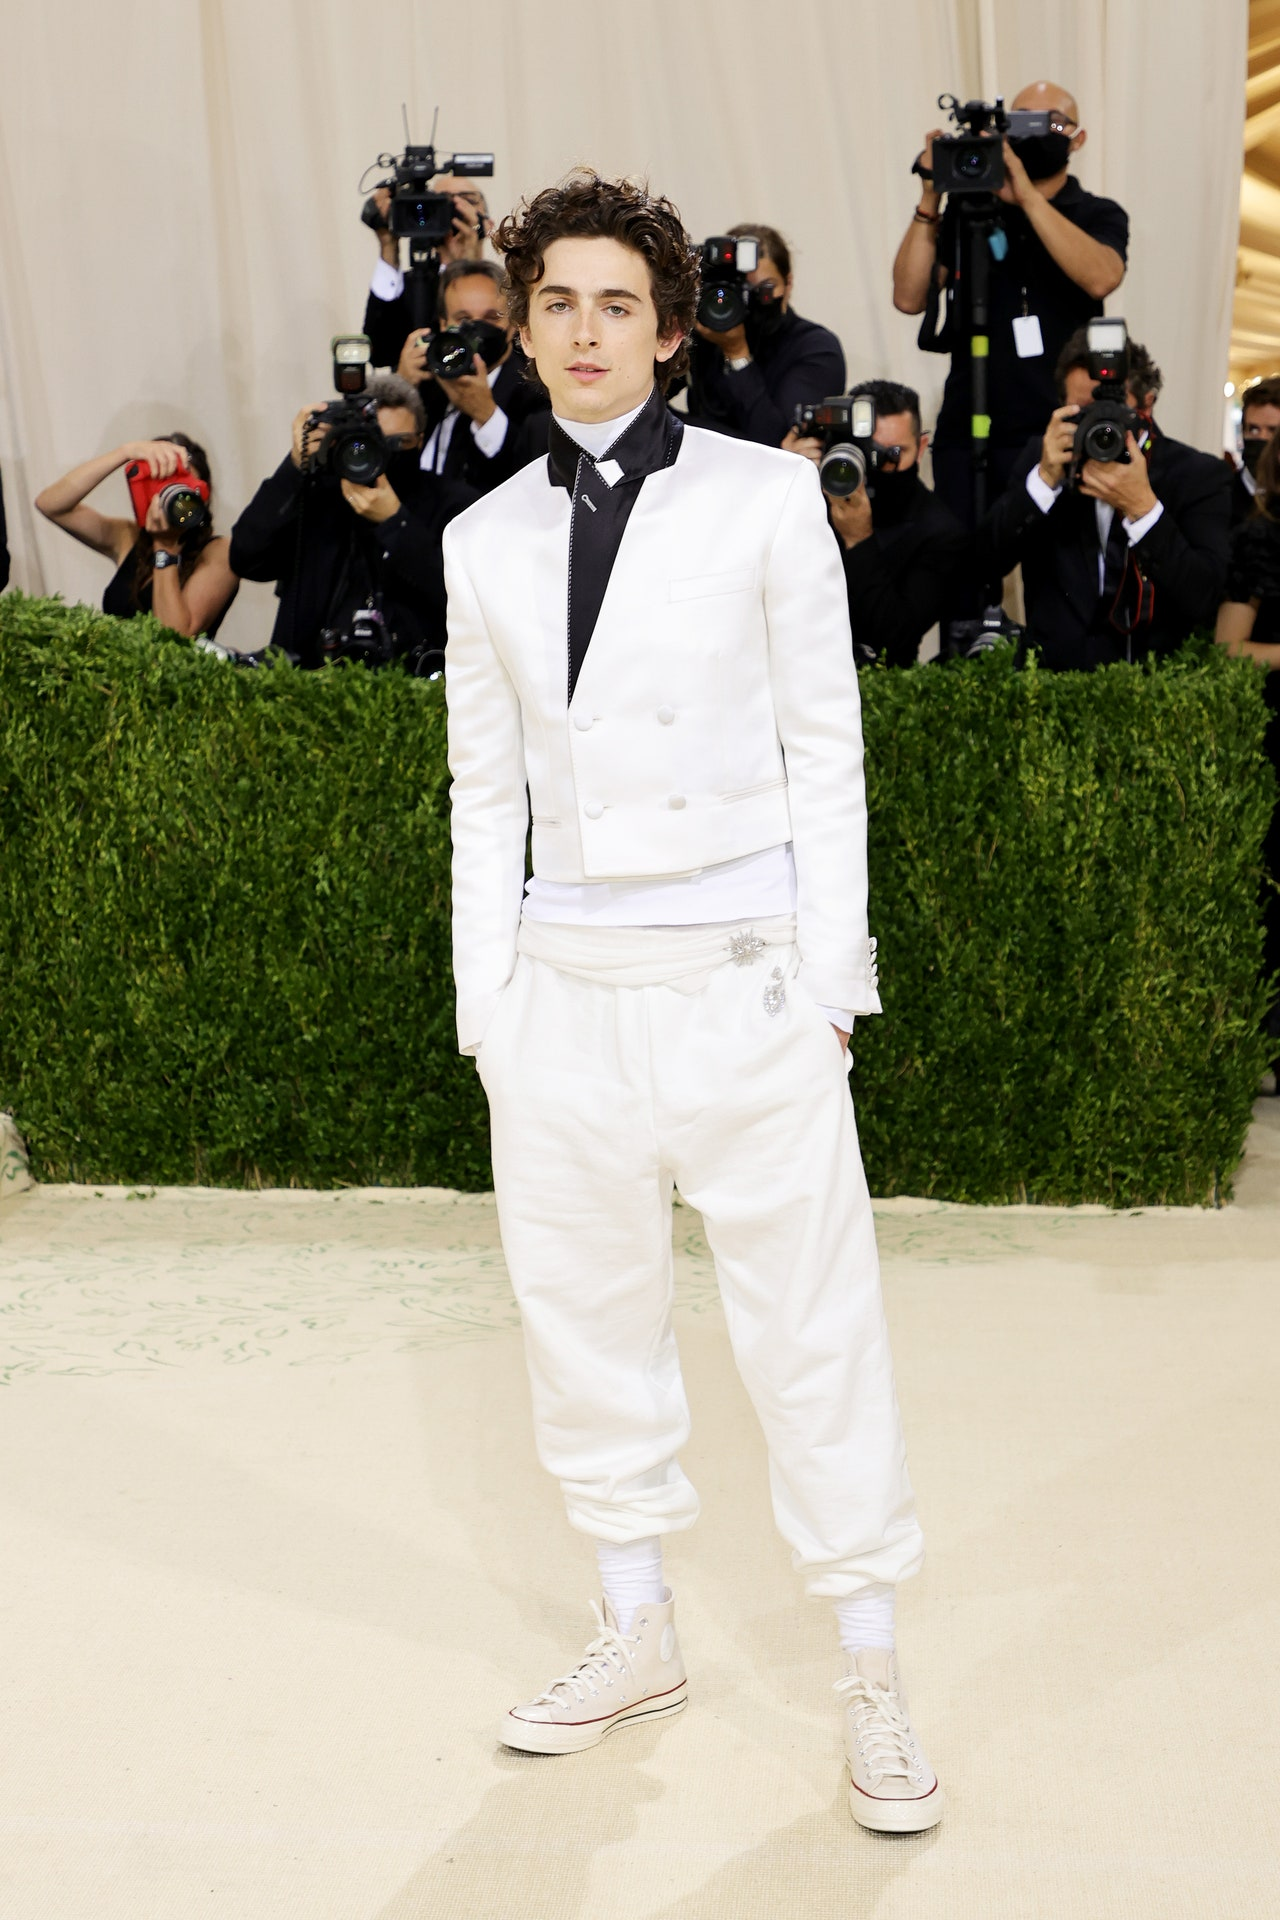 GettyImages 1340124961 - RED CARPET: Os Looks do MET GALA 2021